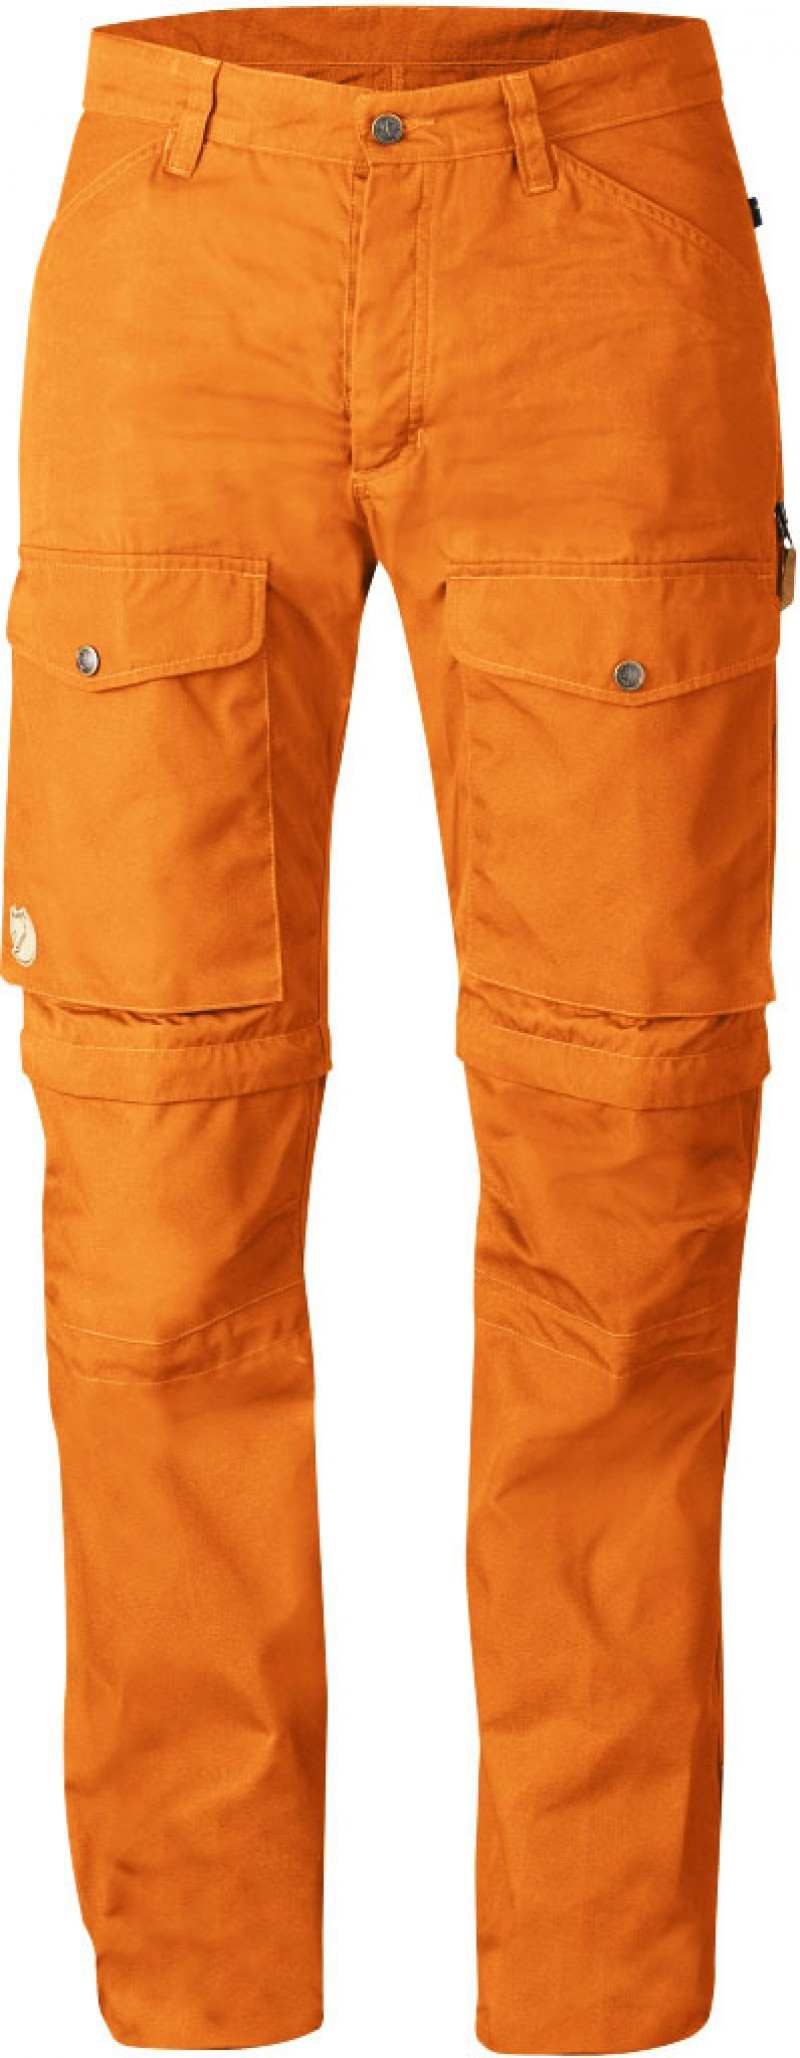 FjallRaven Gaiter Trousers No. 1 Burnt Orange-30